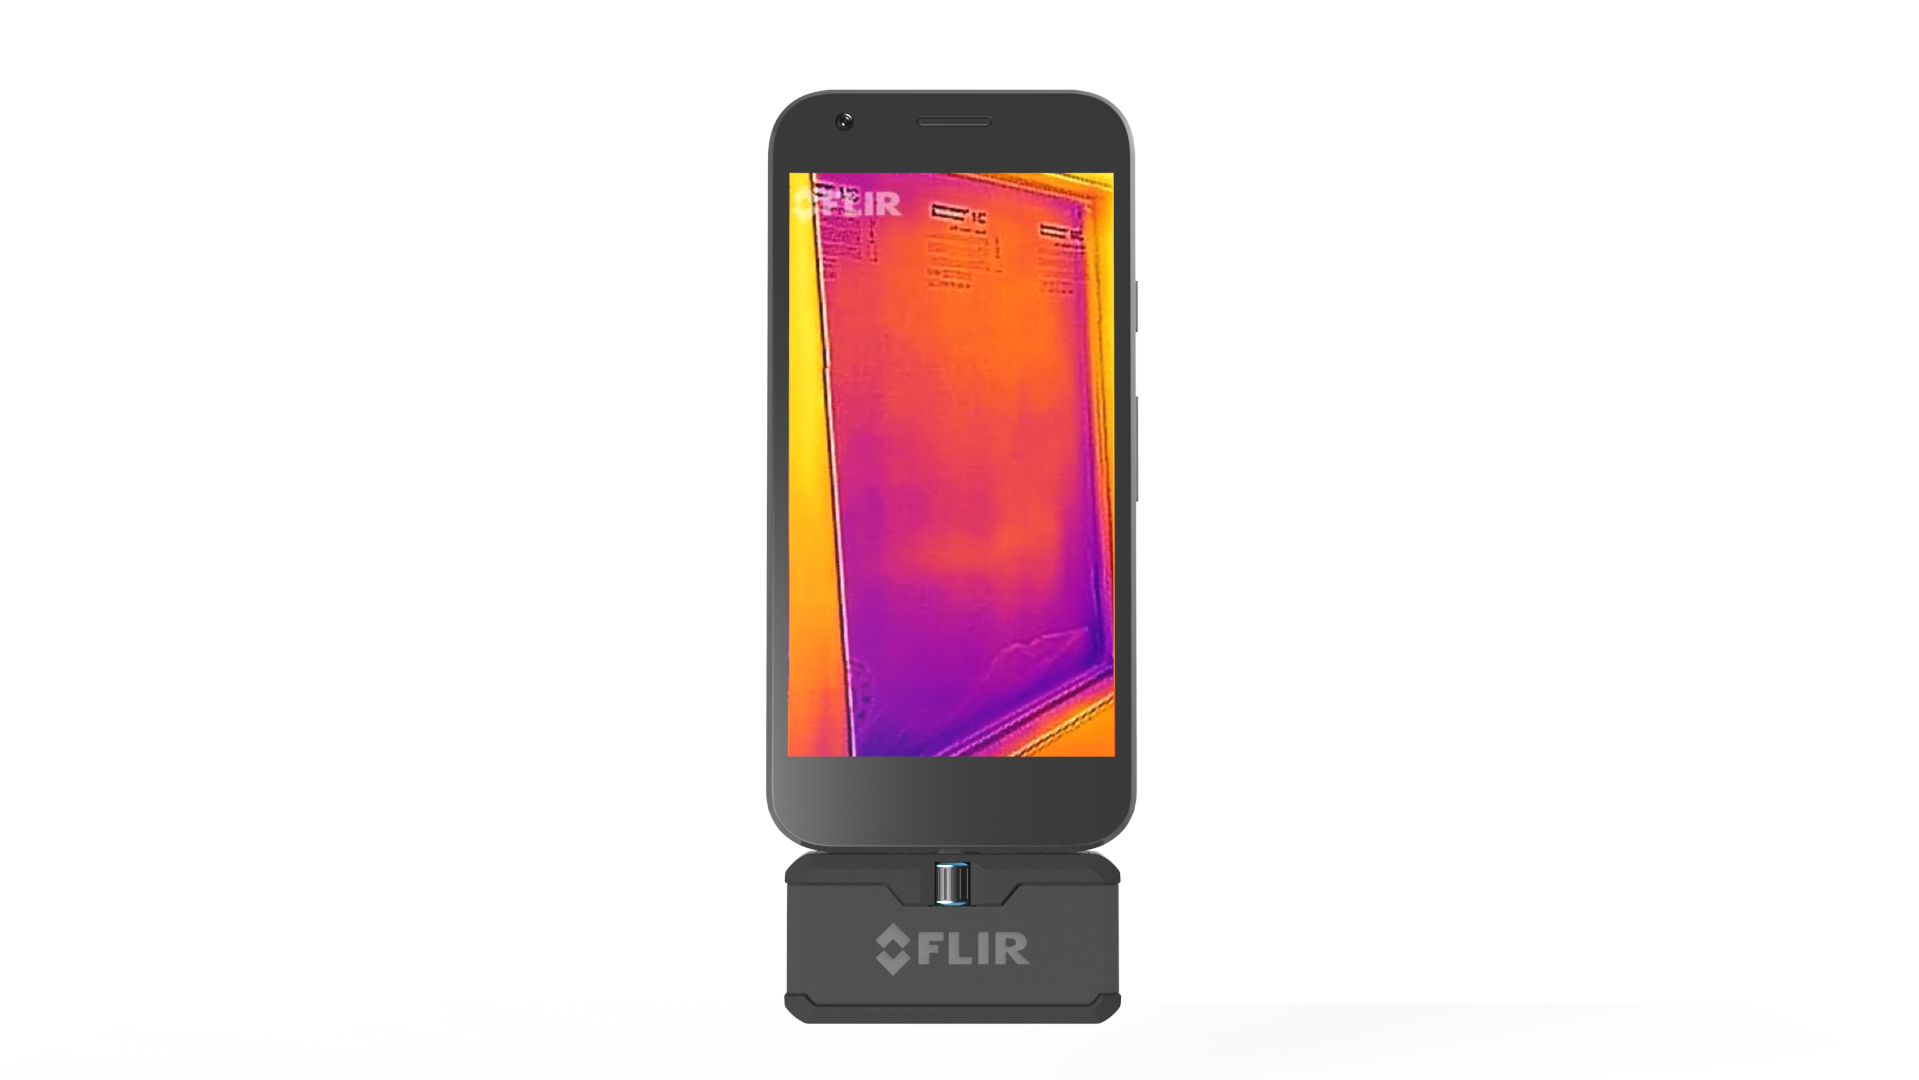 How To Run Plumbing Flir S New Thermal Cameras Are For Amateurs And Pros Alike